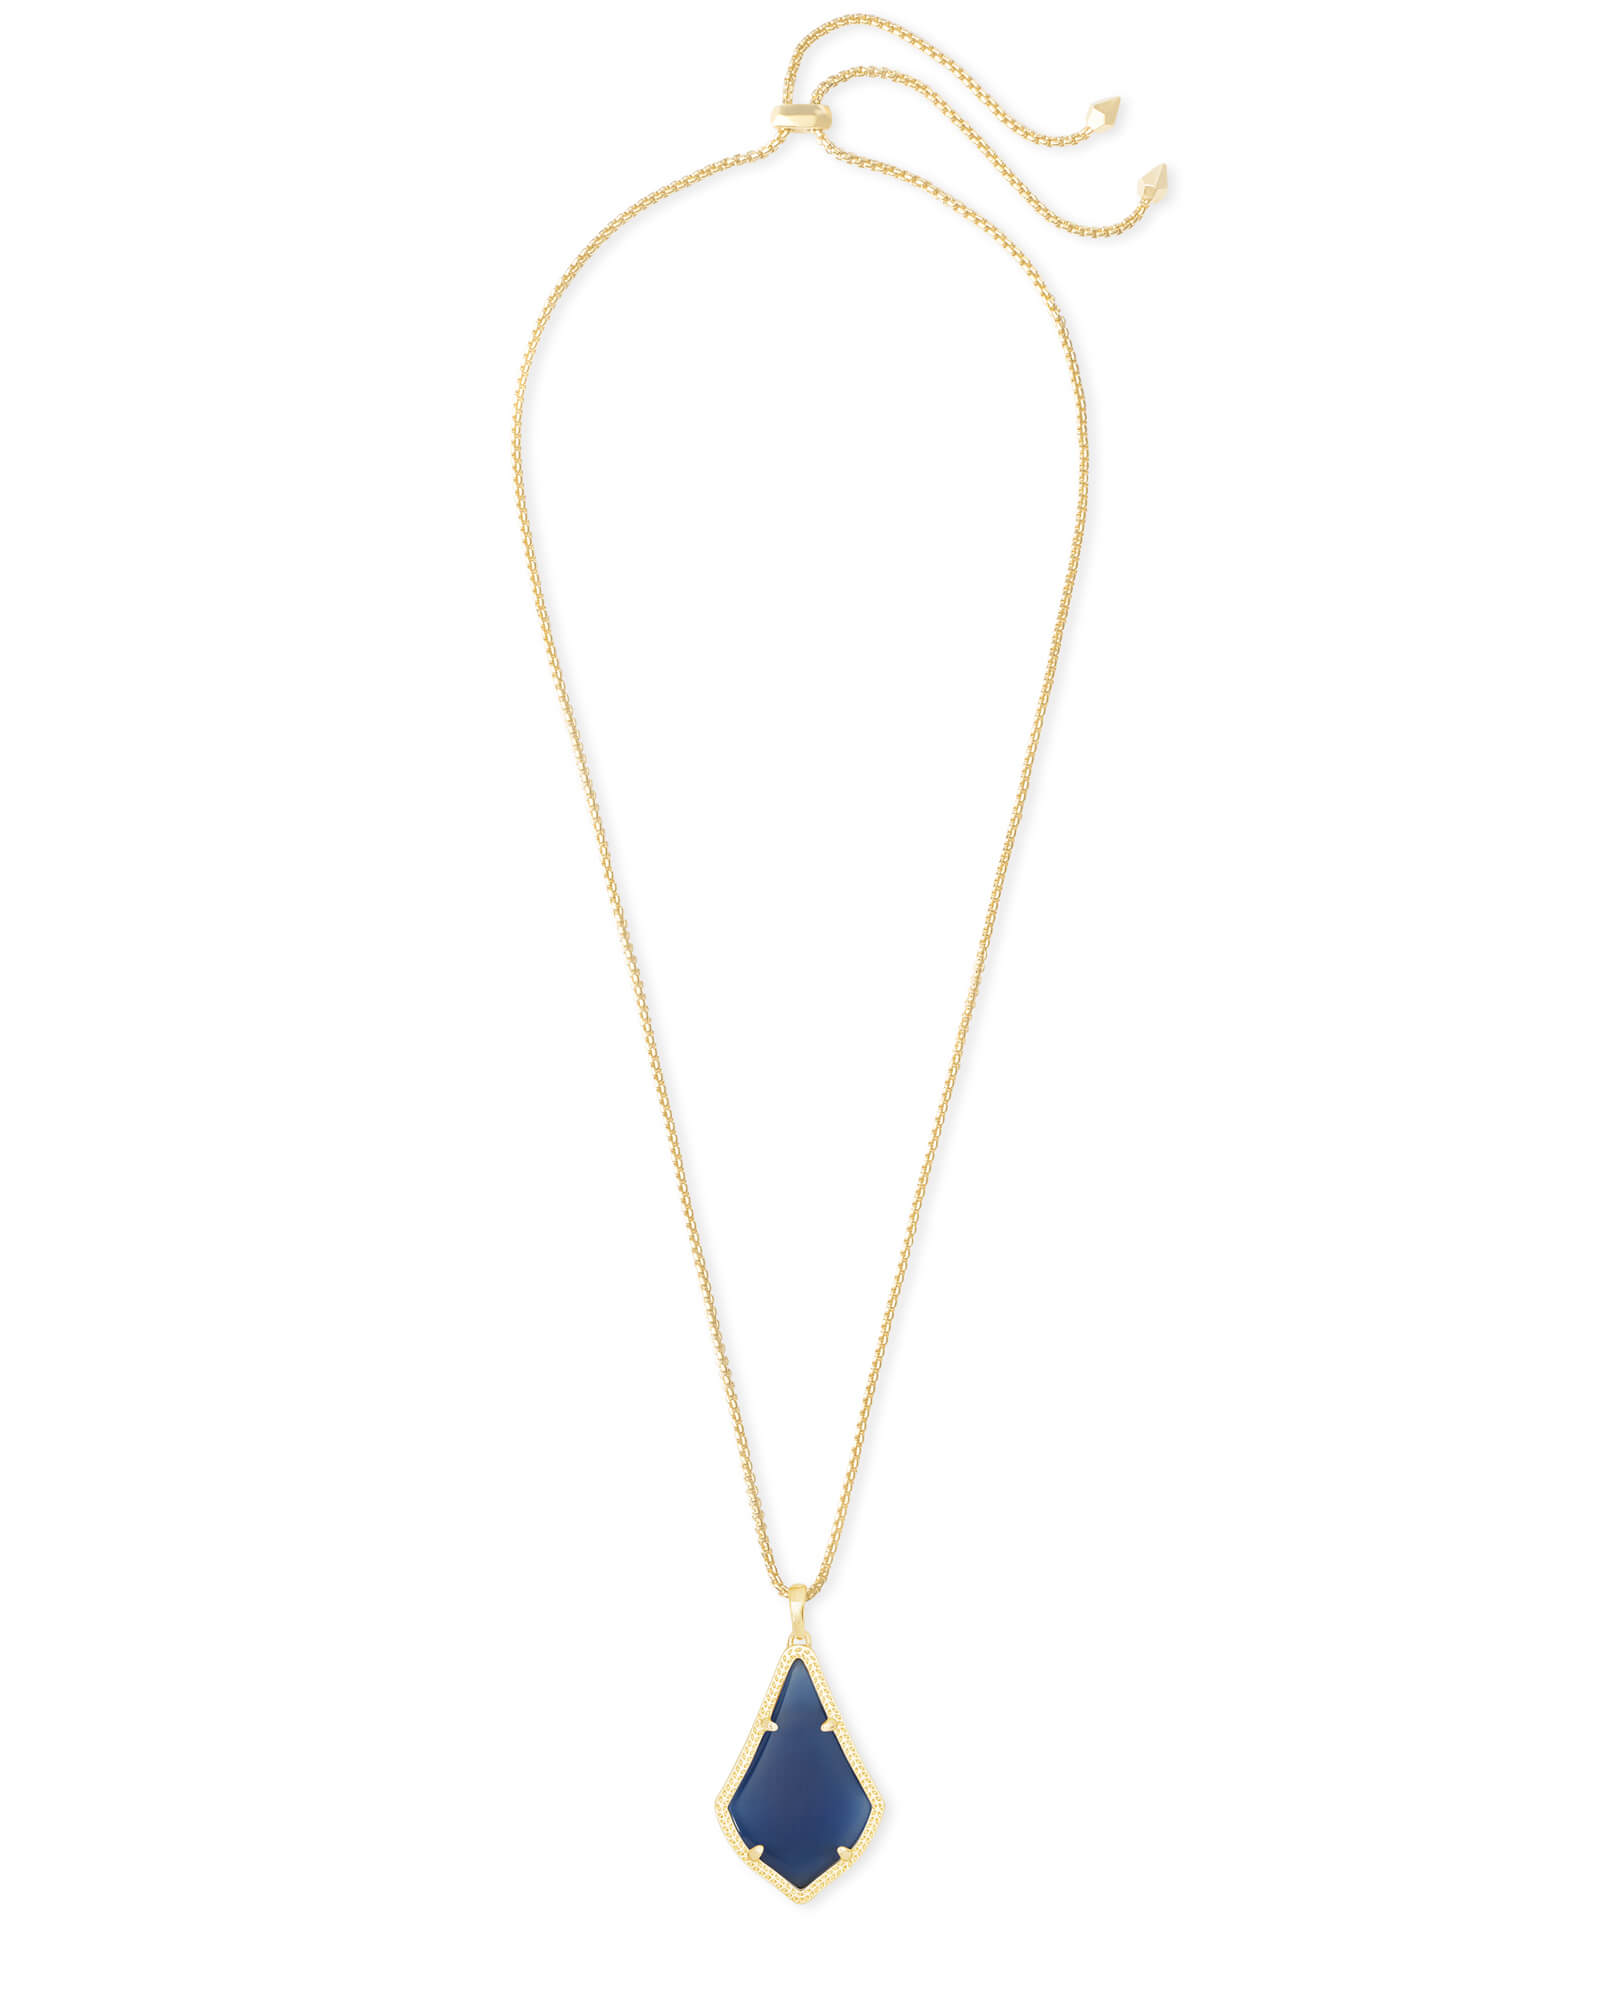 Alex Gold Pendant Necklace in Navy Cat's Eye